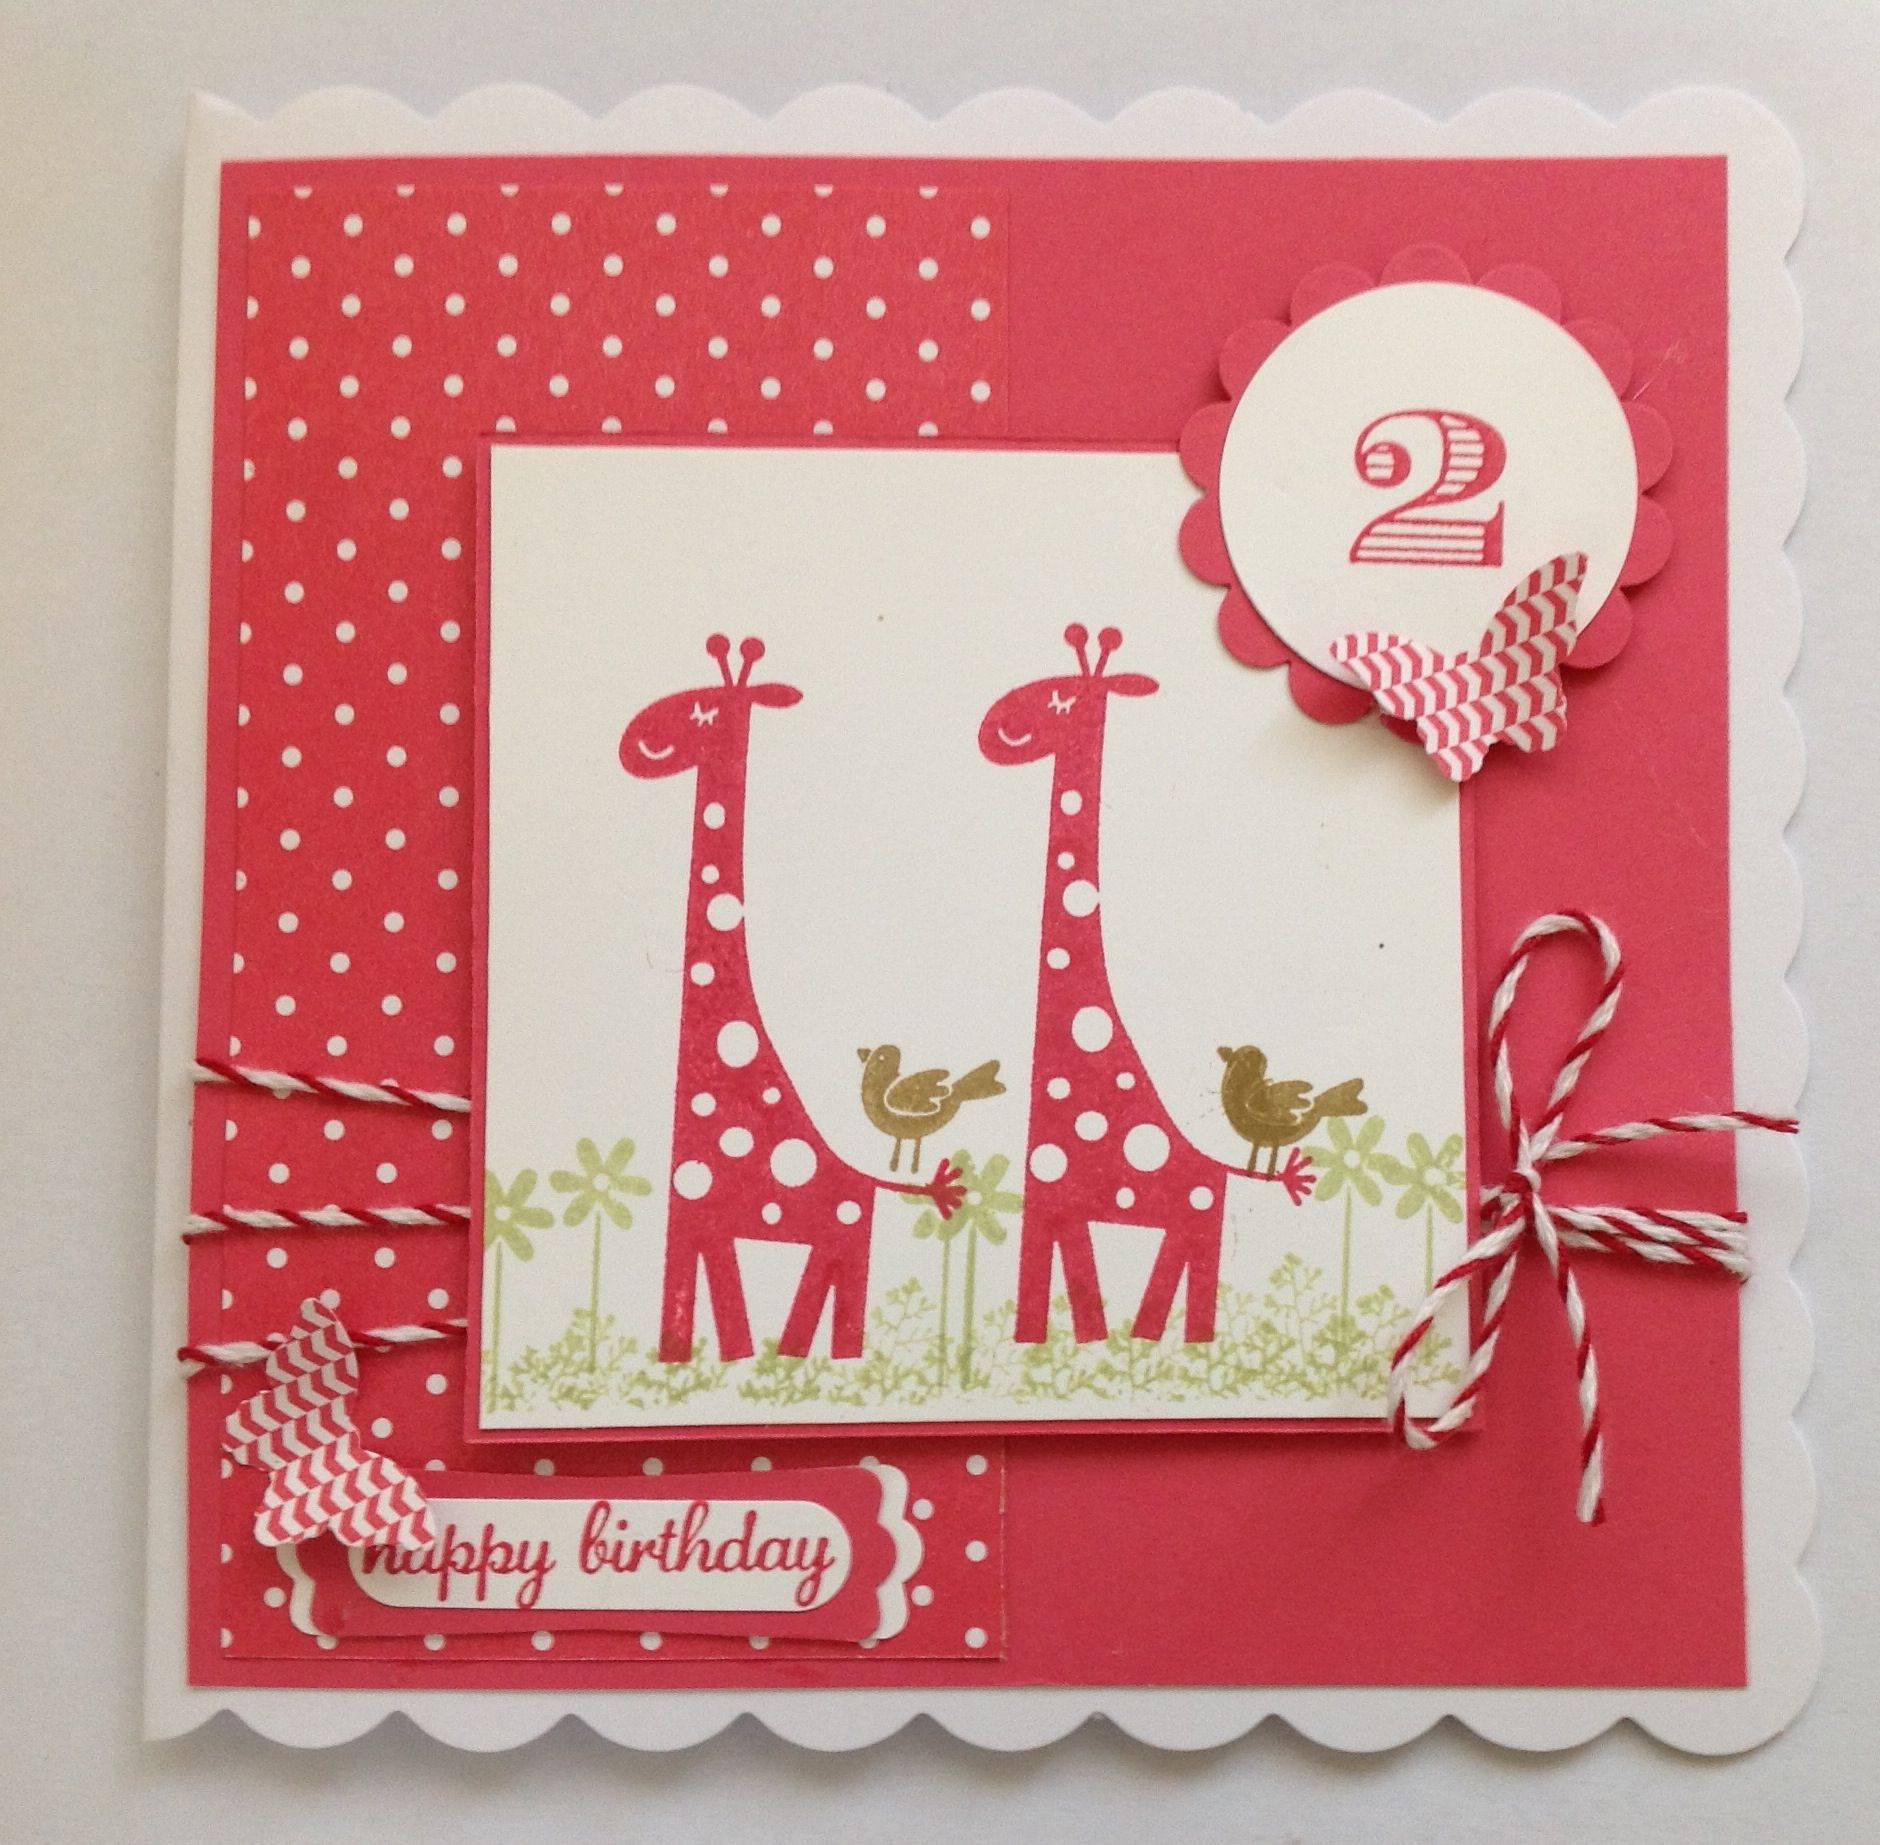 Card Making Ideas For 2 Year Olds Part - 42: Stampin Up Card For 2 Year Old Using DSP, Wild About You Retired Stamp Set